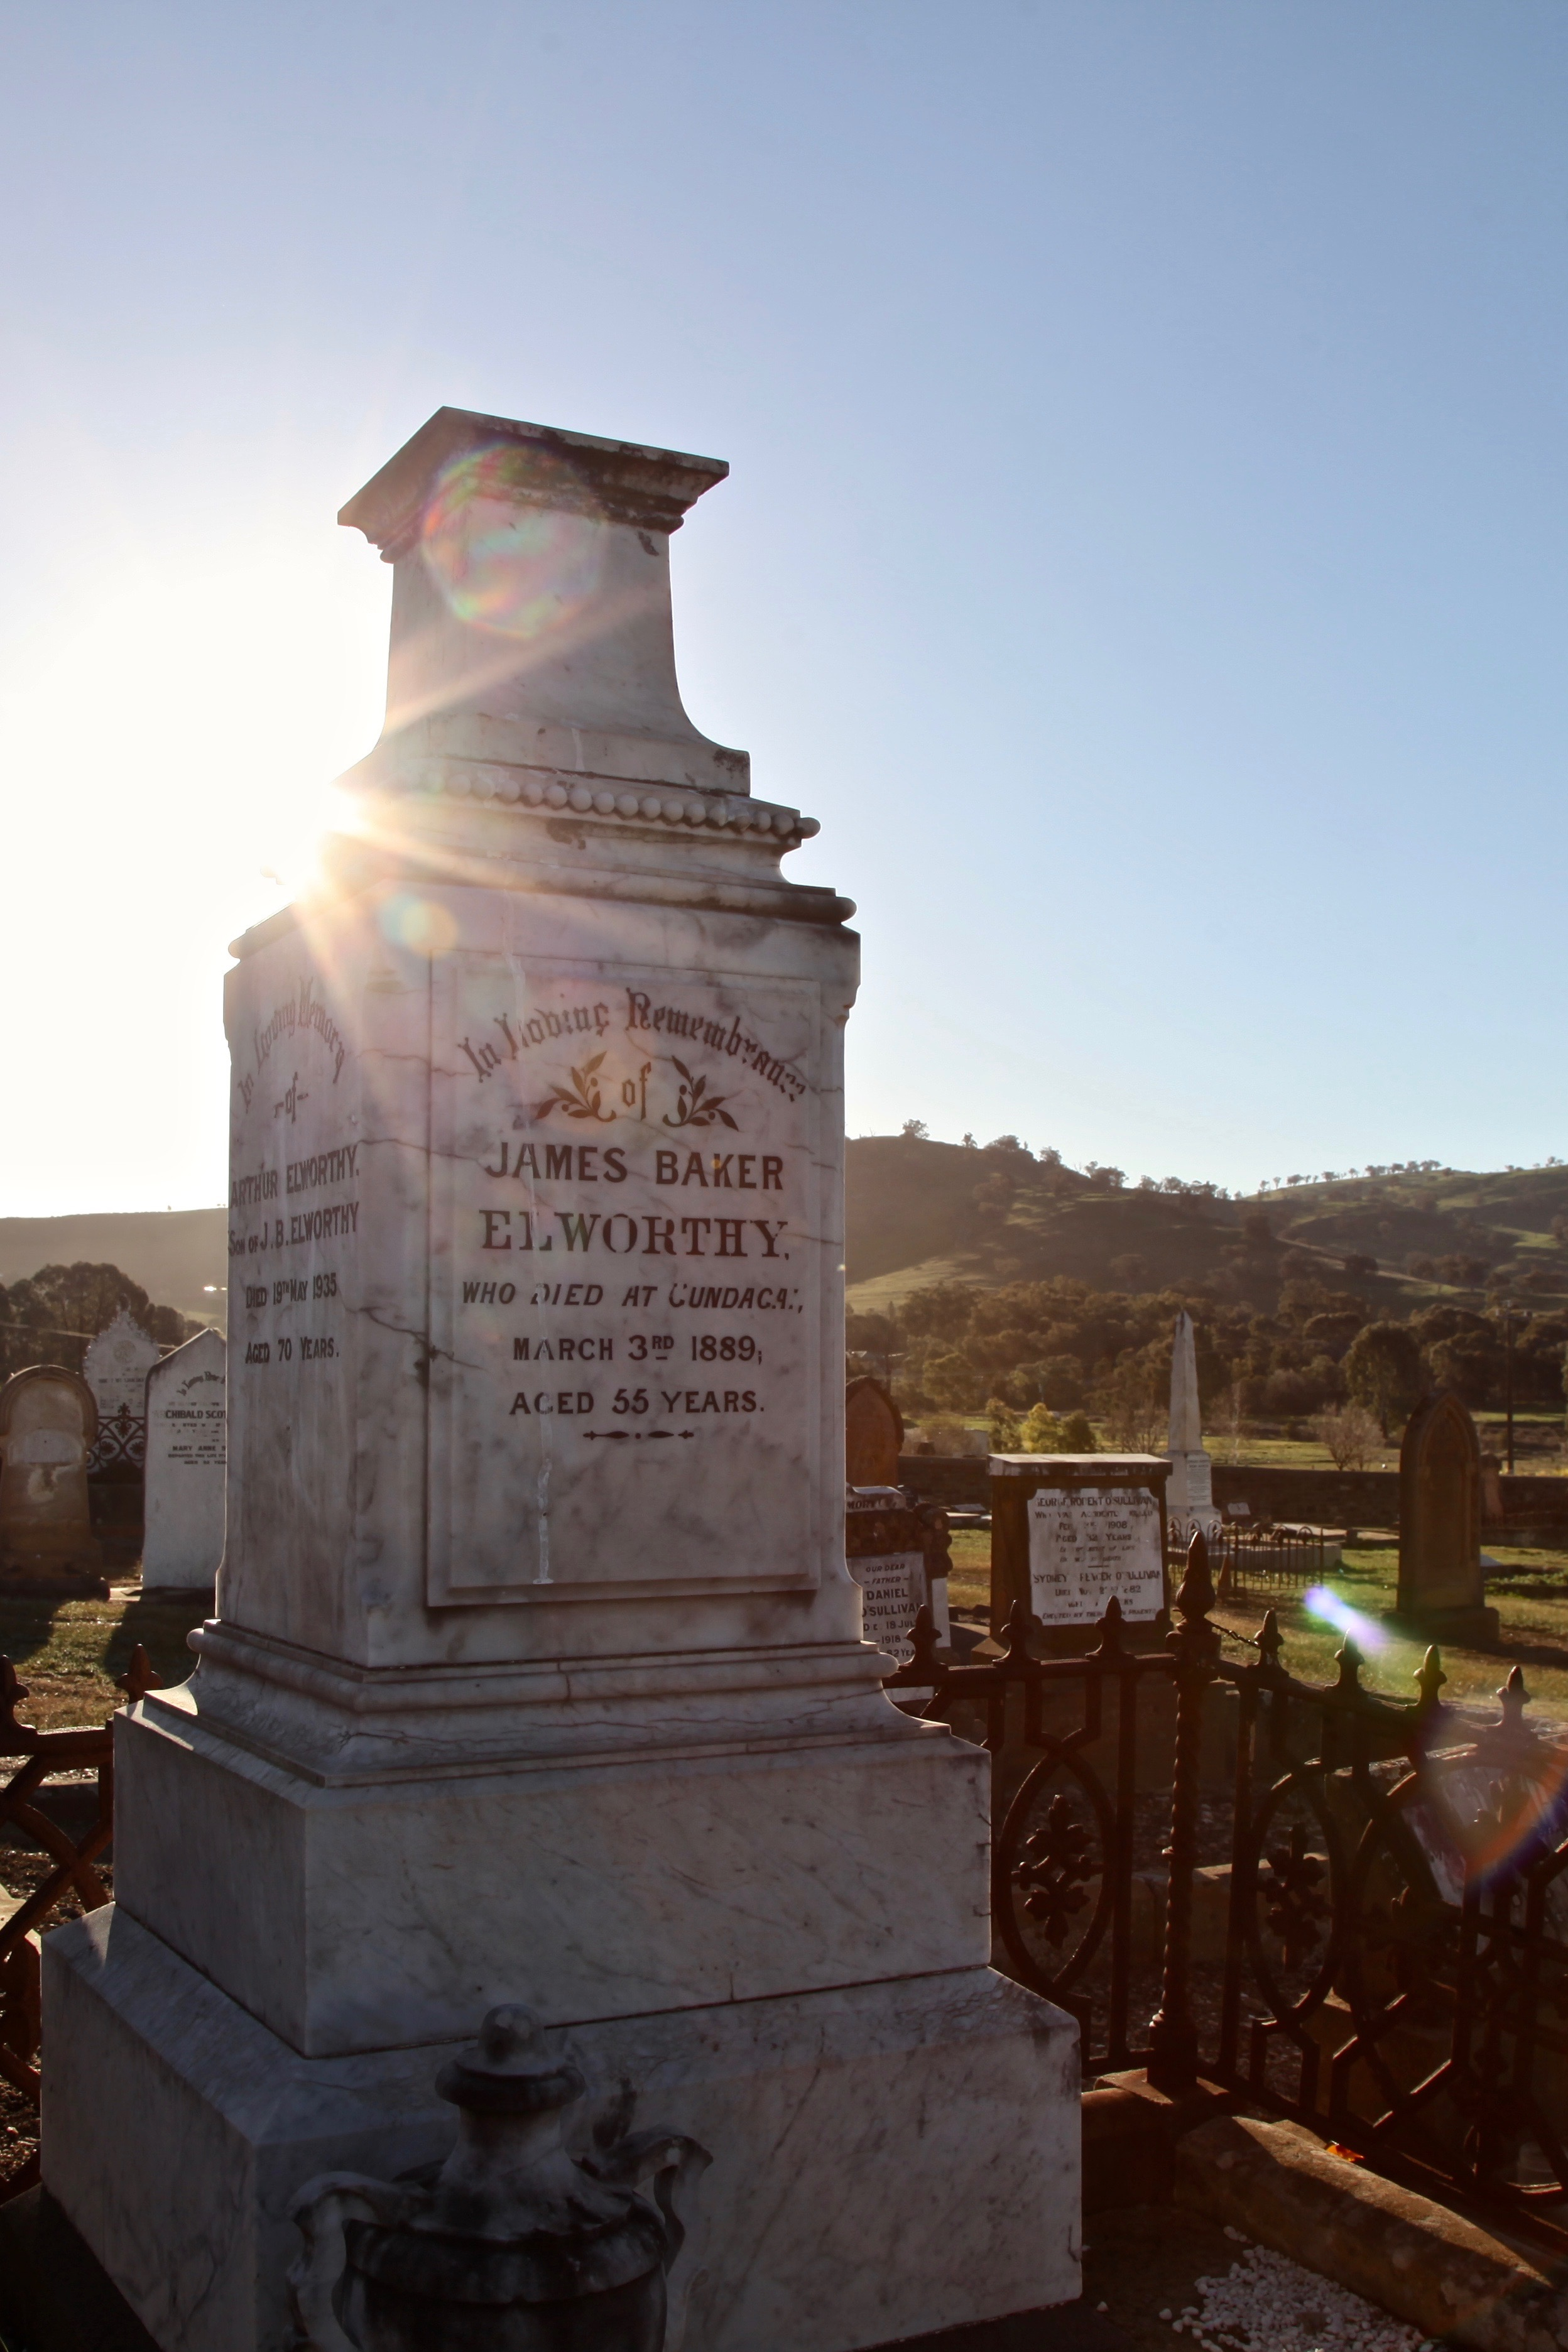 James Baker Elworthy was the founding publisher of the town's local paper, The Gundagai Times.